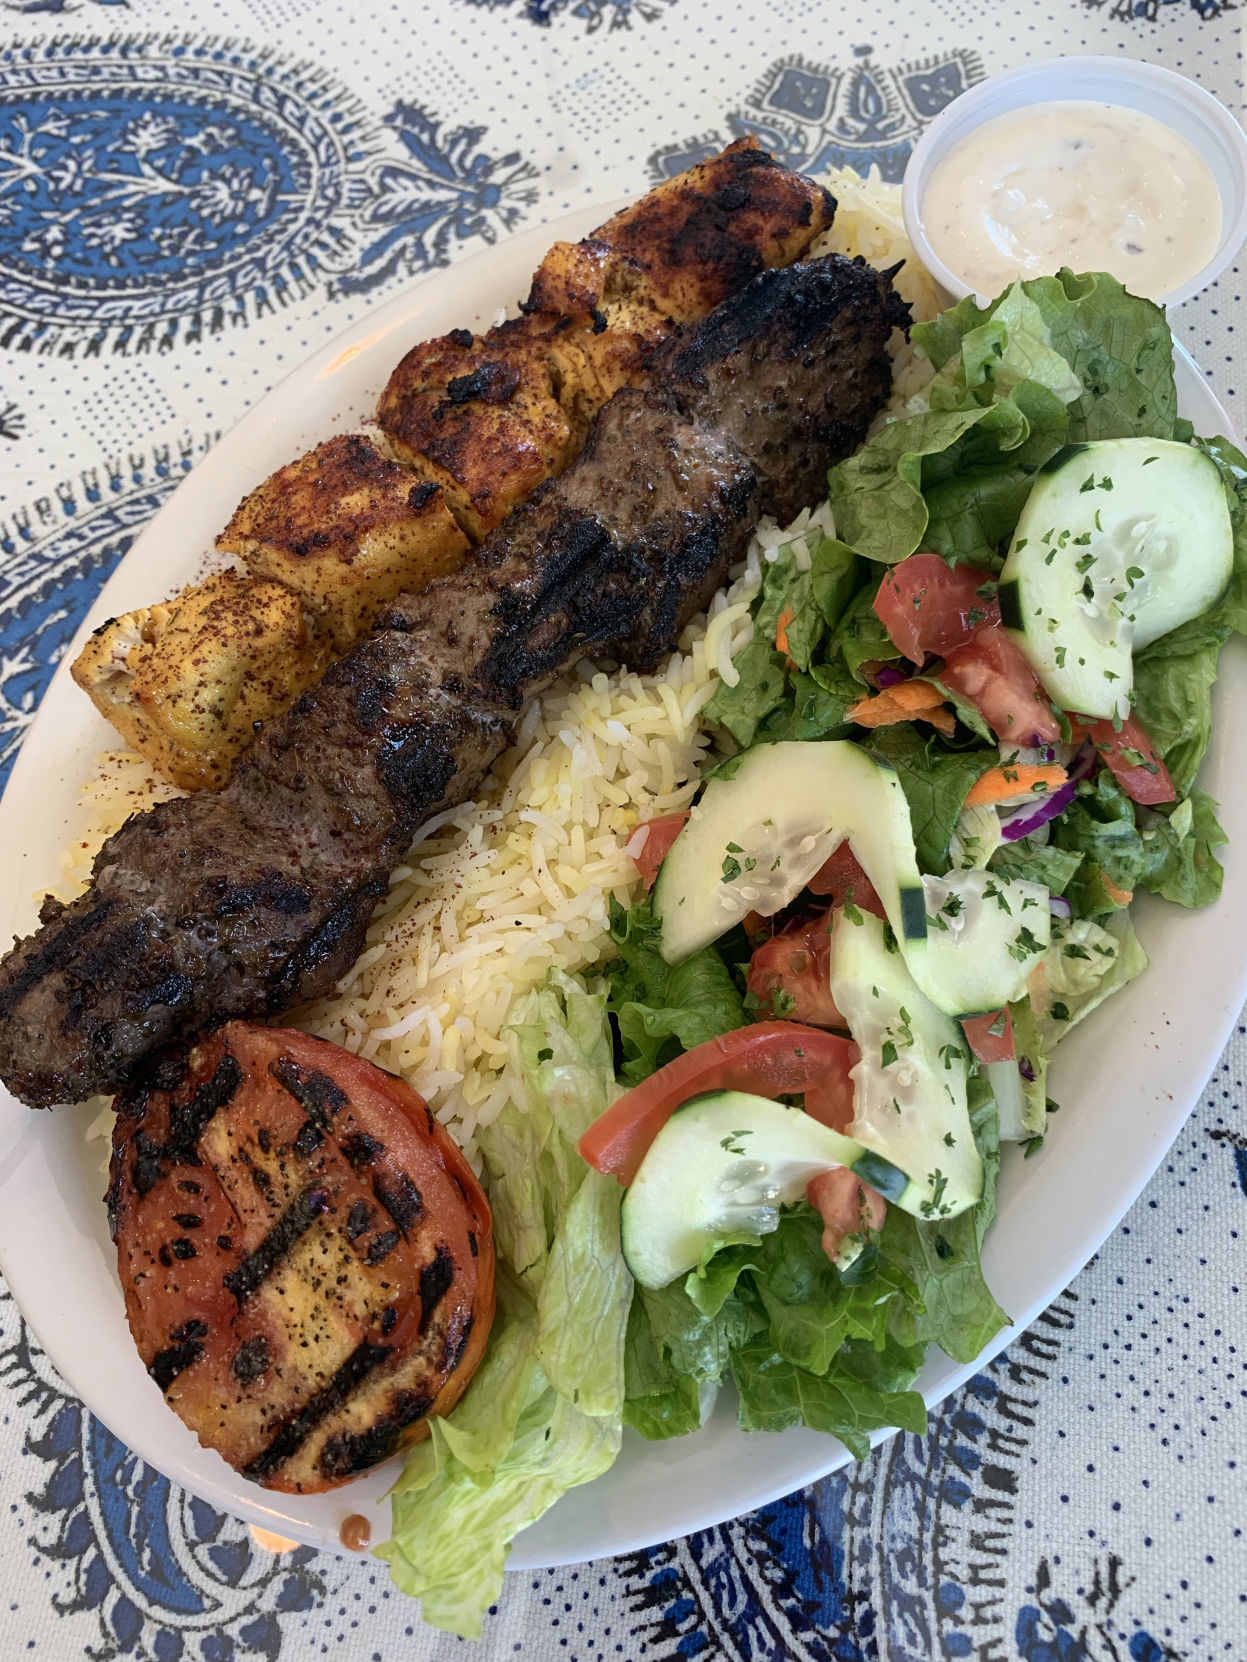 Dishing it Up: Kabob House